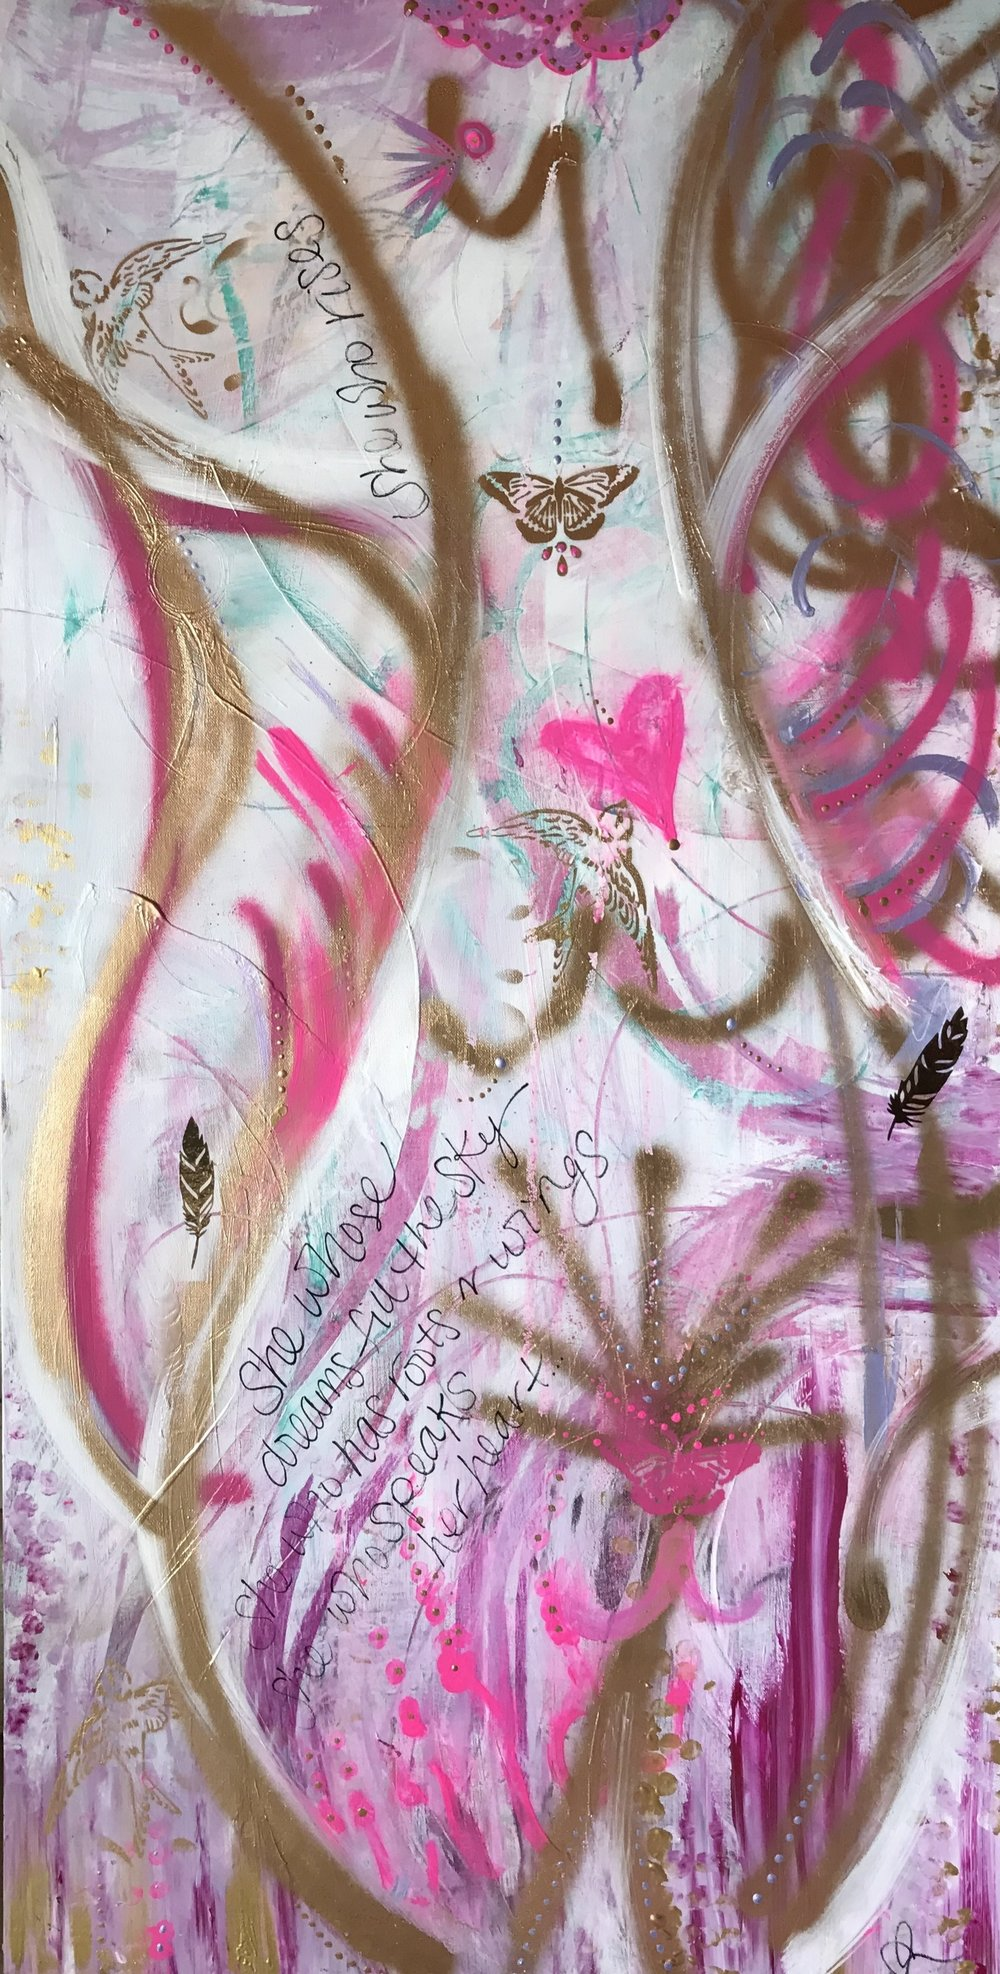 She Who Rises acrylic, spray paint & gold leaf on canvas